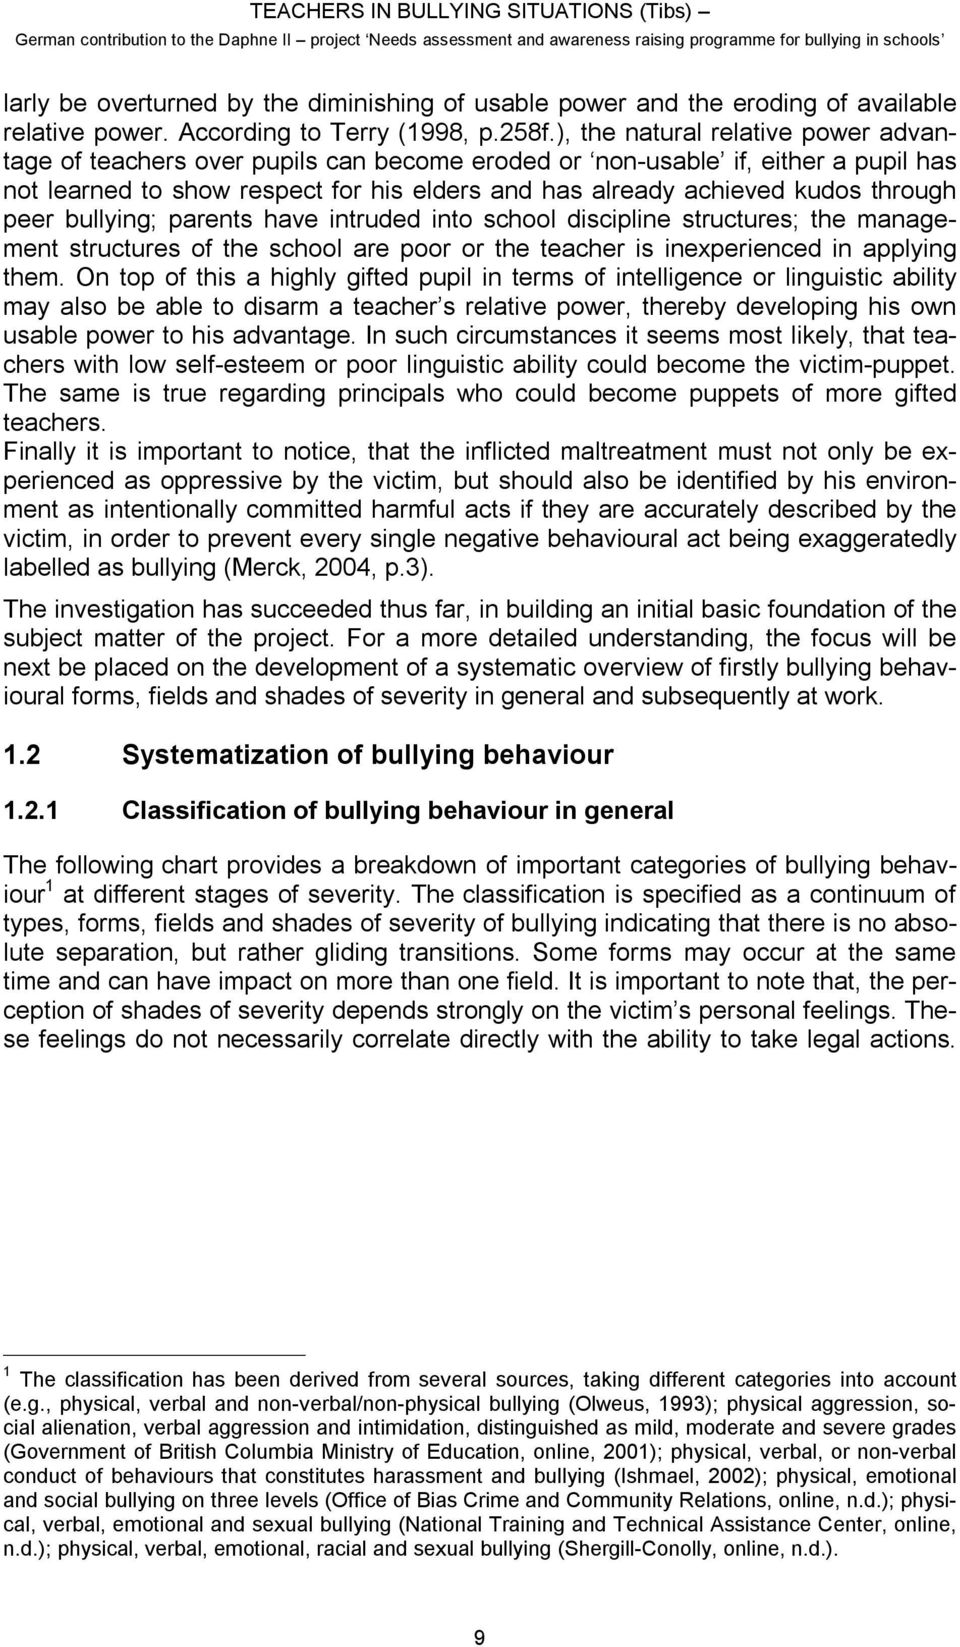 through peer bullying; parents have intruded into school discipline structures; the management structures of the school are poor or the teacher is inexperienced in applying them.